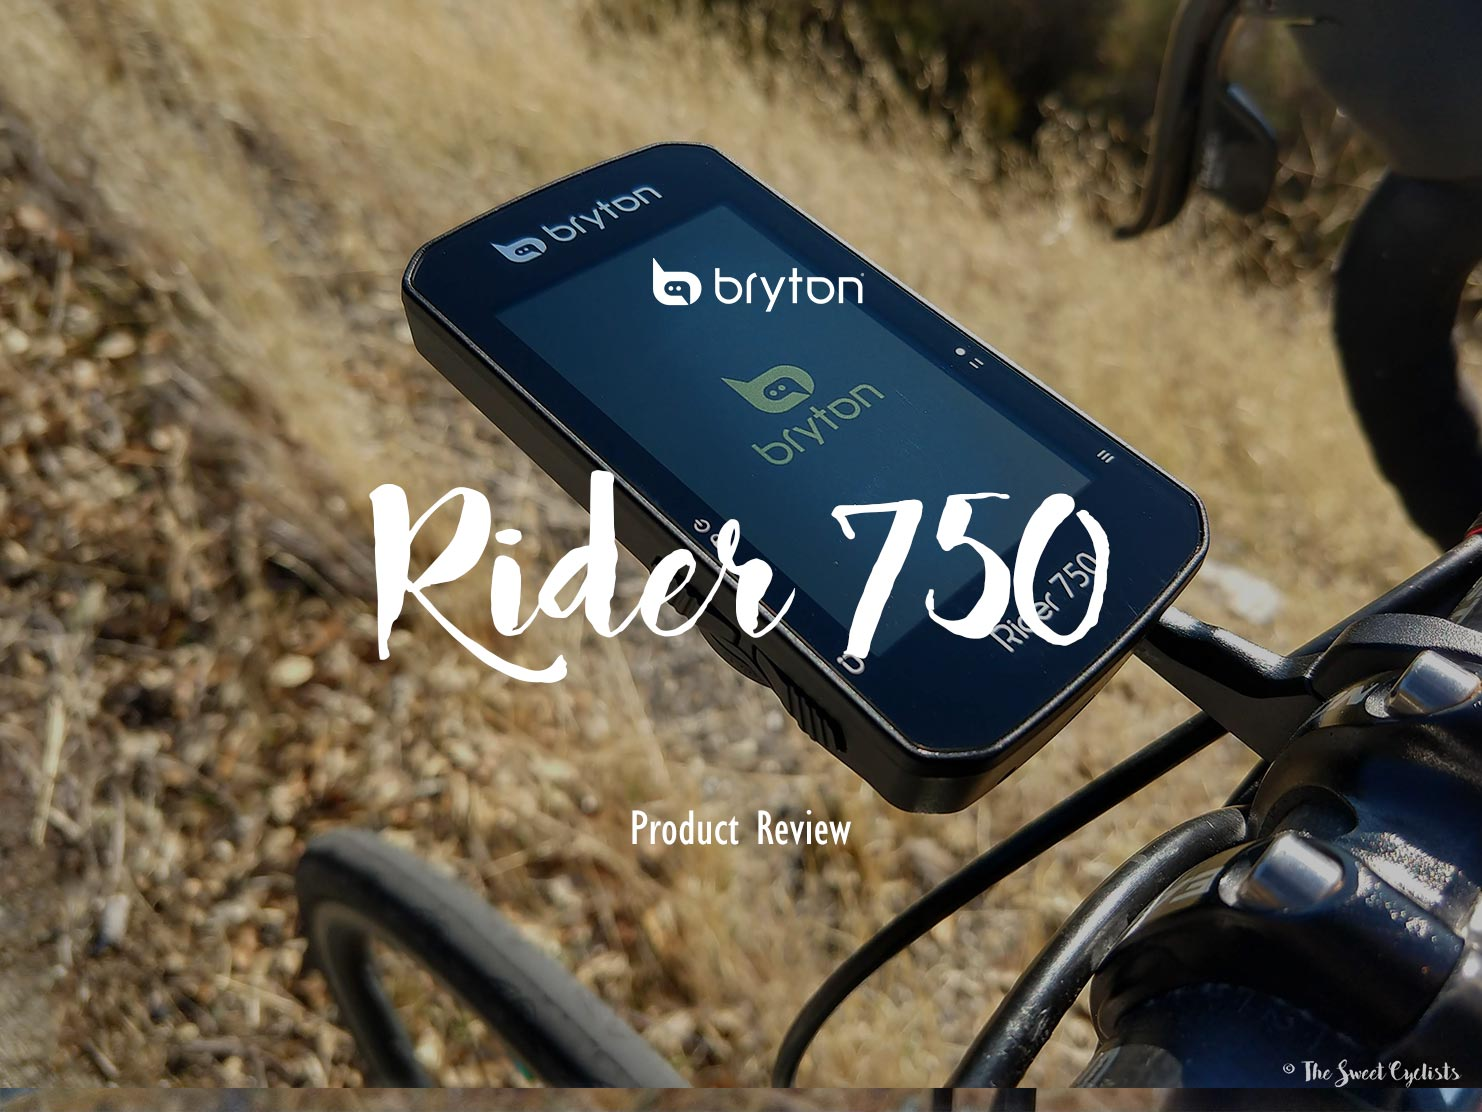 Bryton's top-of-the-line color GPS cycling computer